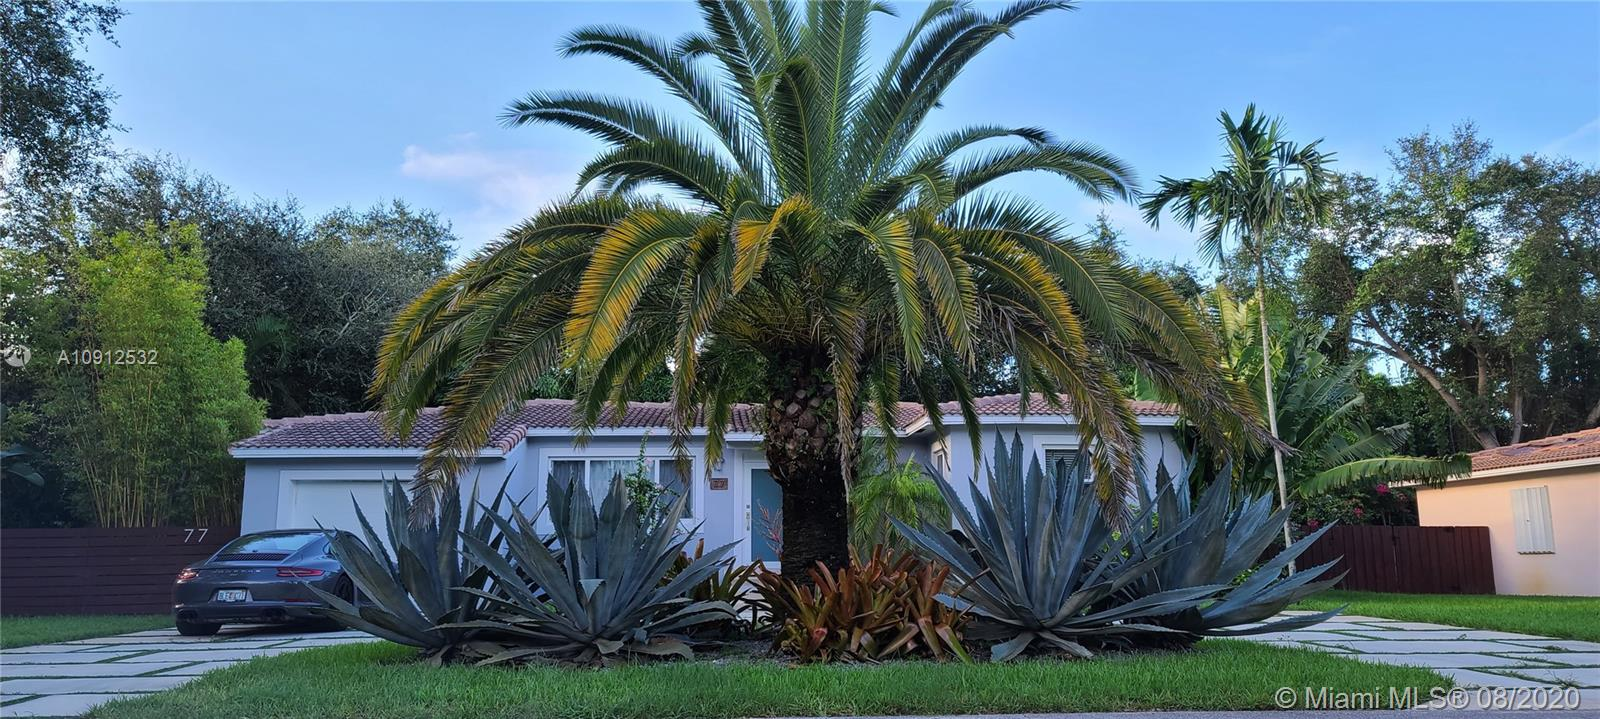 77 NW 101st St  For Sale A10912532, FL